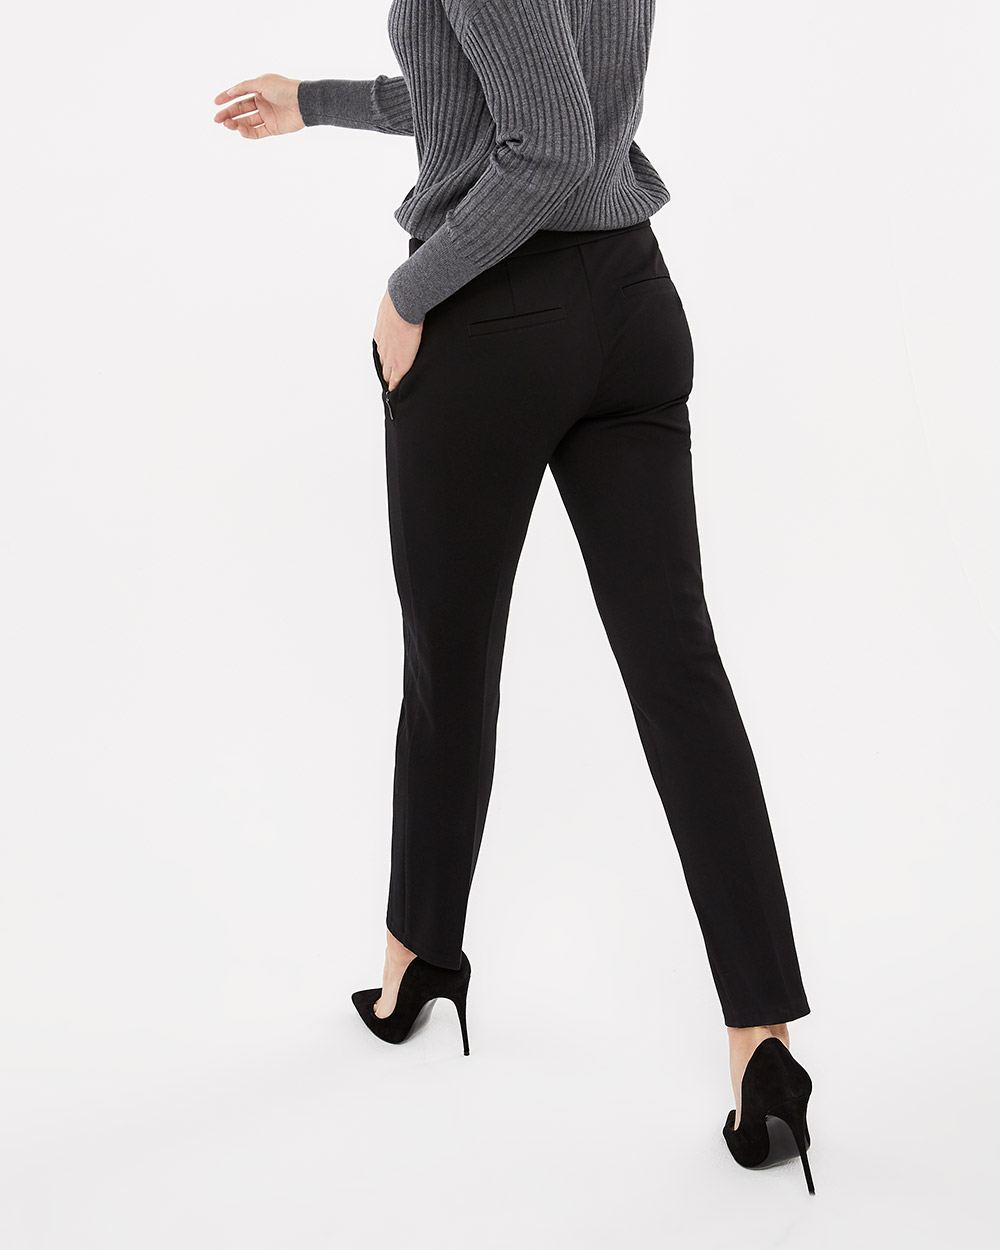 The Modern Stretch Straight Leg Pants